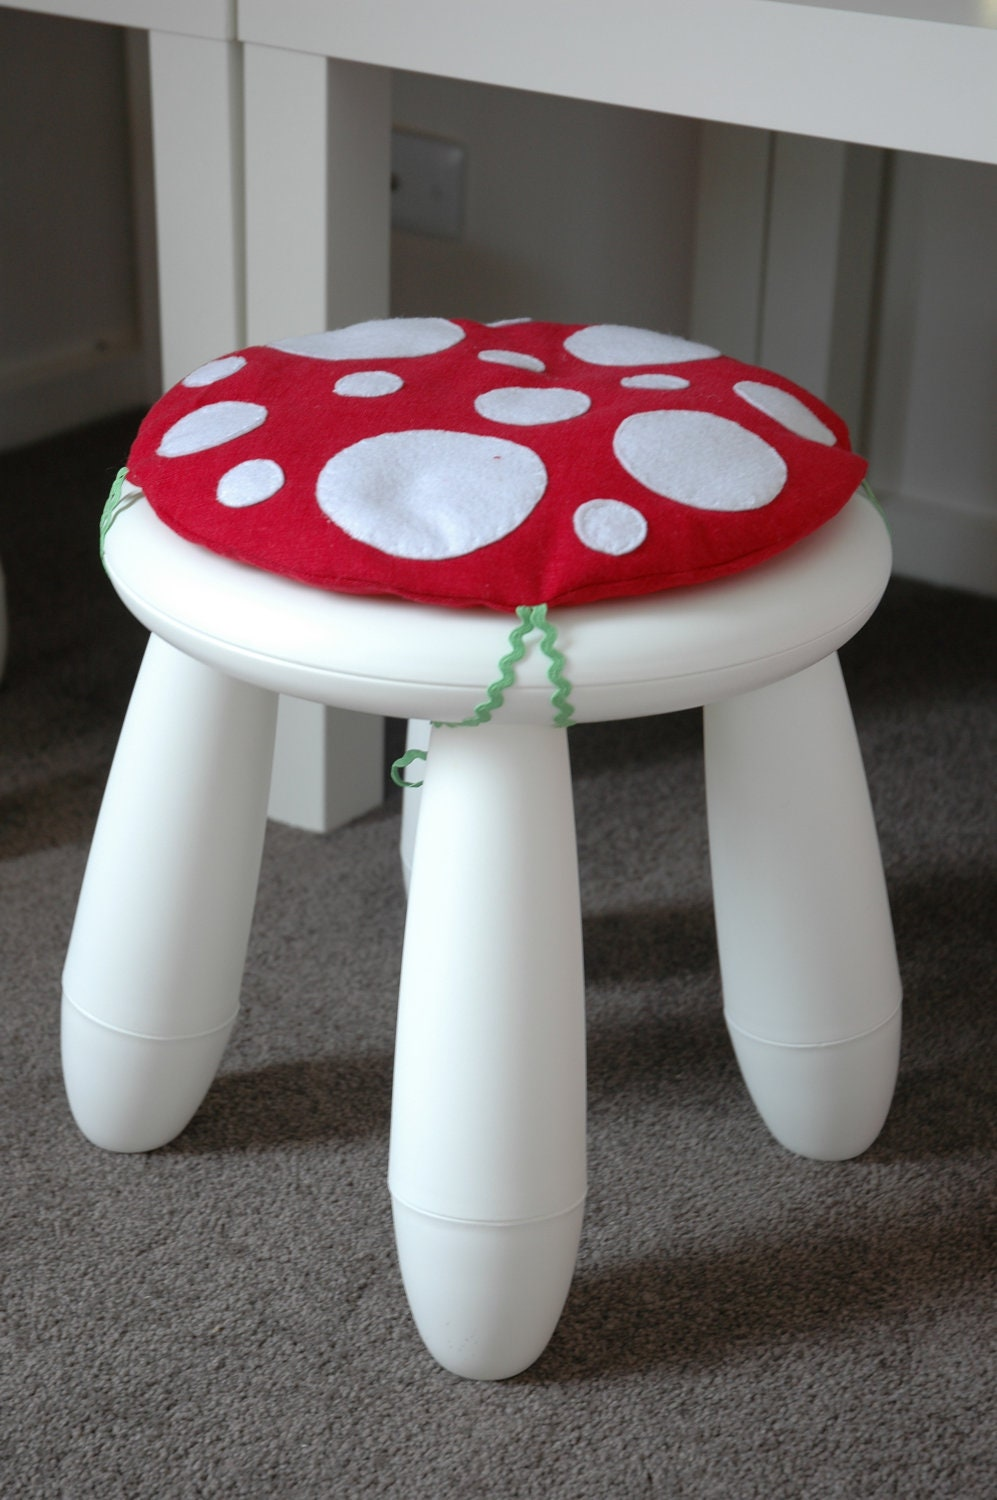 Items similar to toadstool cushion red children kids cushion for ikea mammut stool chair on etsy - Ikea mammut stuhl ...